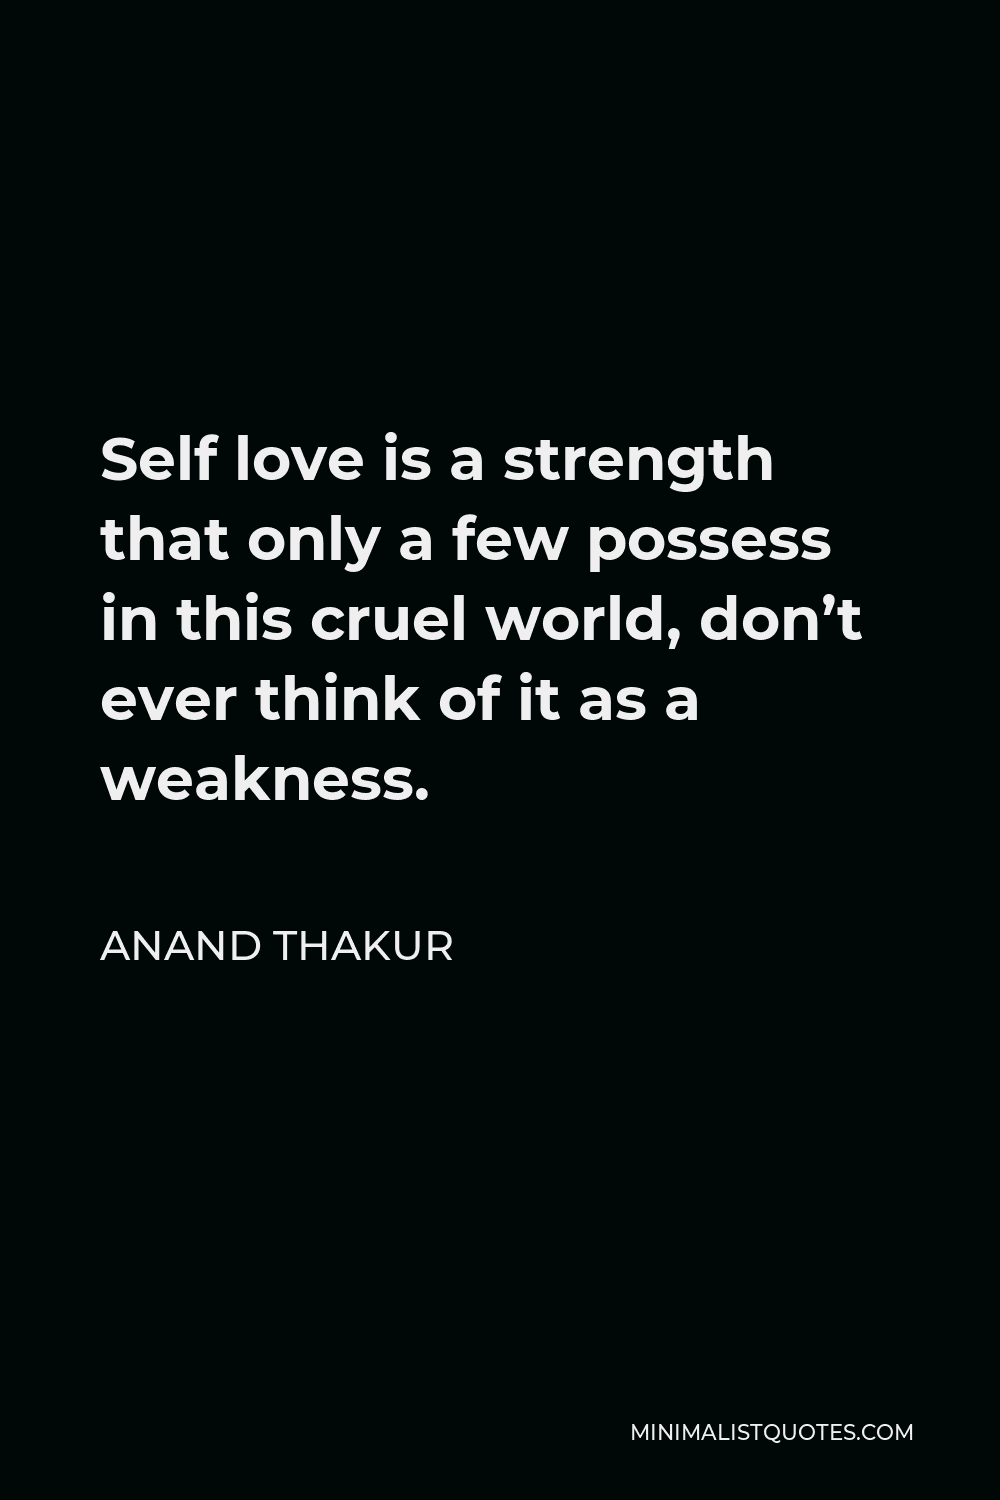 Anand Thakur Quote - Self love is a strength that only a few possess in this cruel world, don't ever think of it as a weakness.